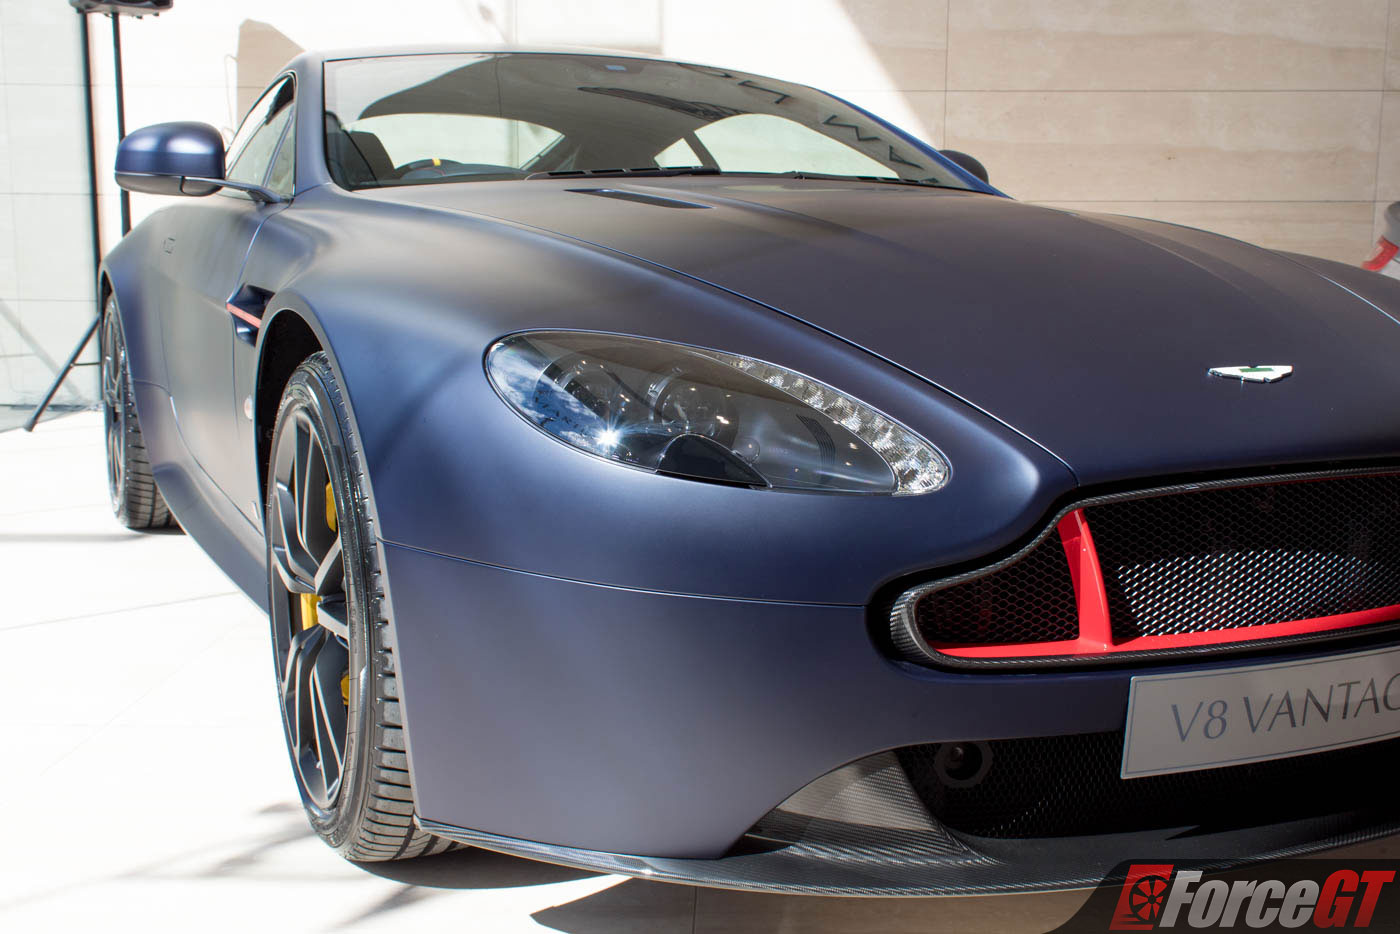 Aston Martin Vantage S Red Bull Racing Edition Front Close Up on Aston Martin V12 Vantage S Revealed